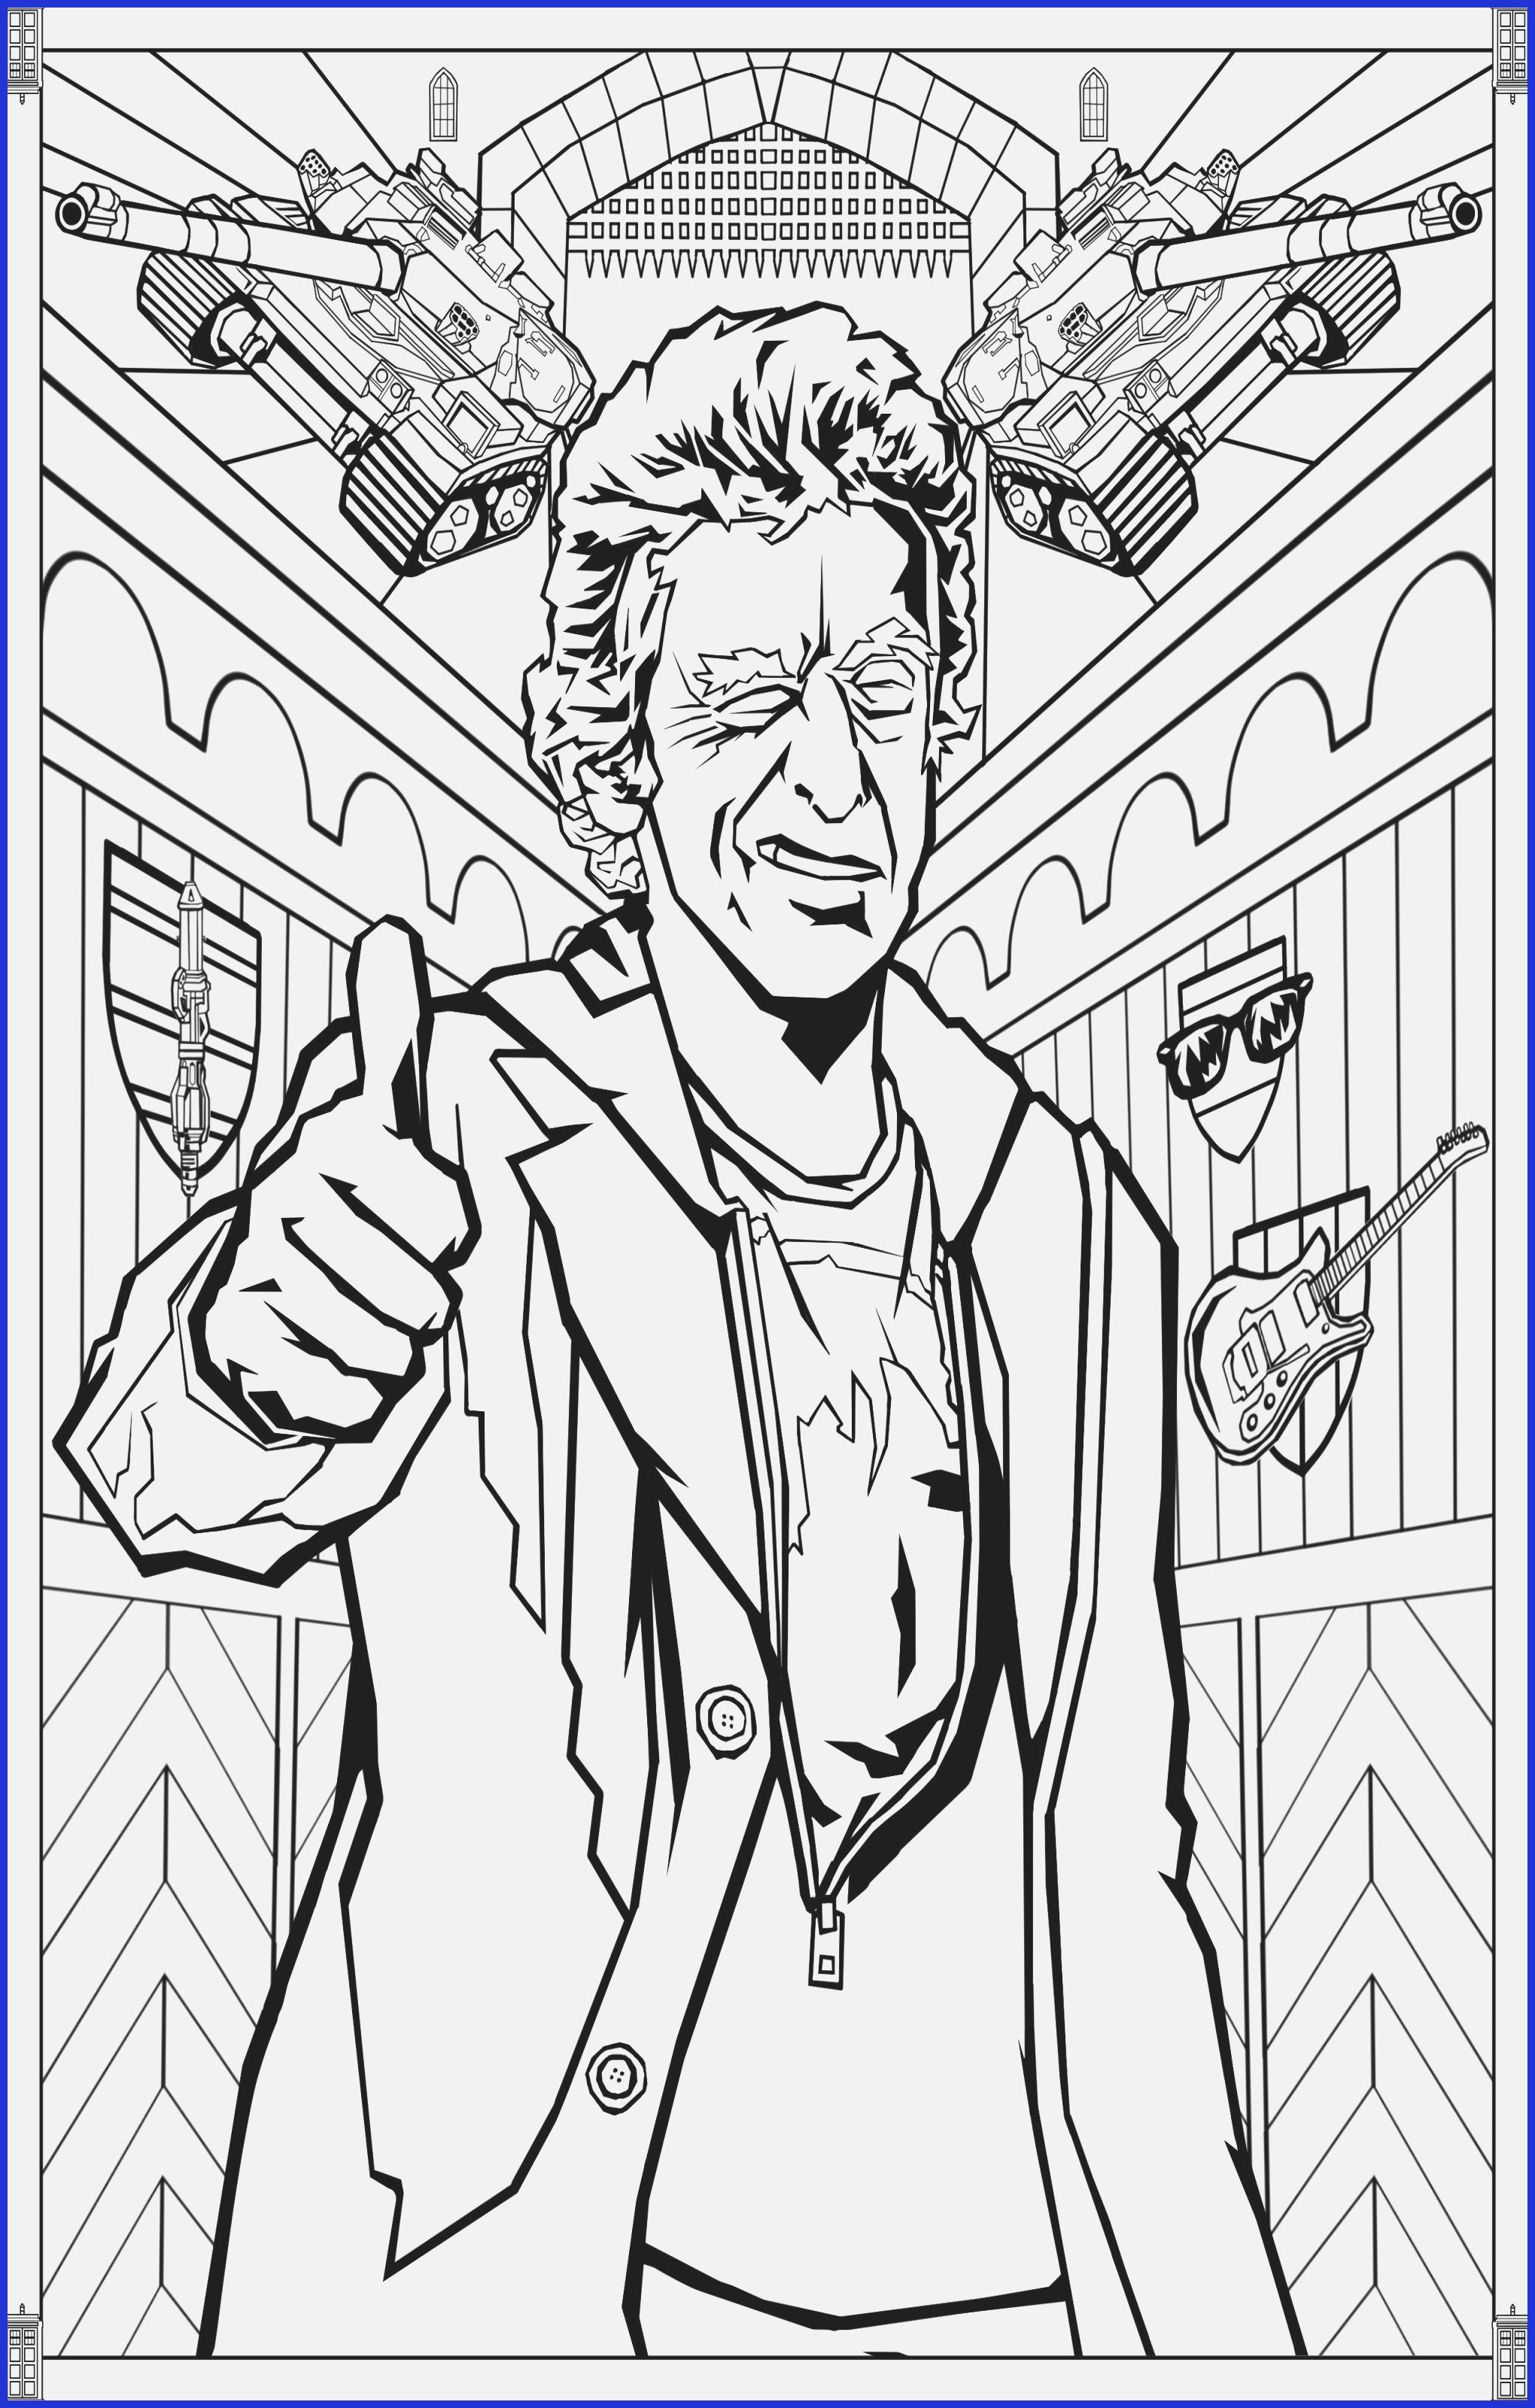 Doctor Who Coloring Book Beautiful Doctor Coloring Sheets Coloring Books Coloring Pages Vintage Coloring Books